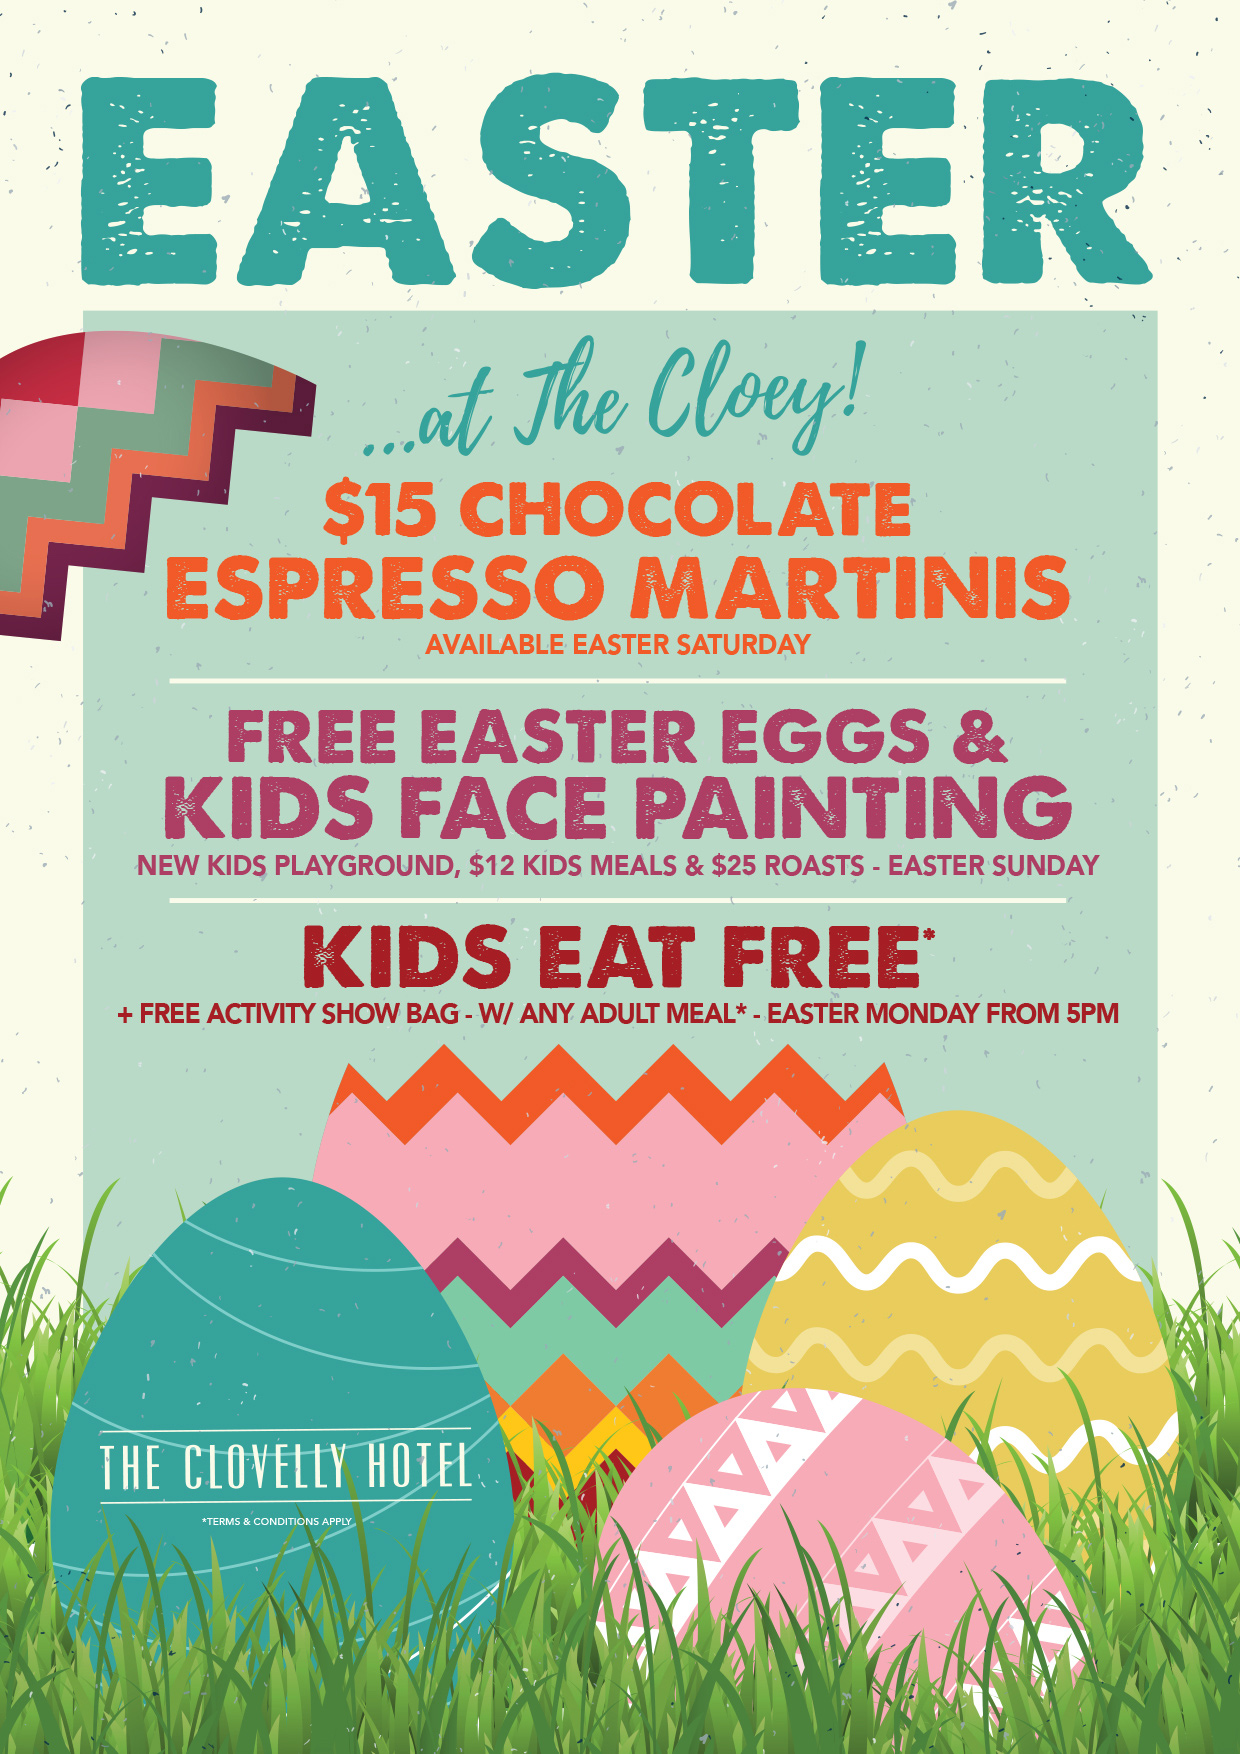 Easter Activities all Long Weekend at the Cloey